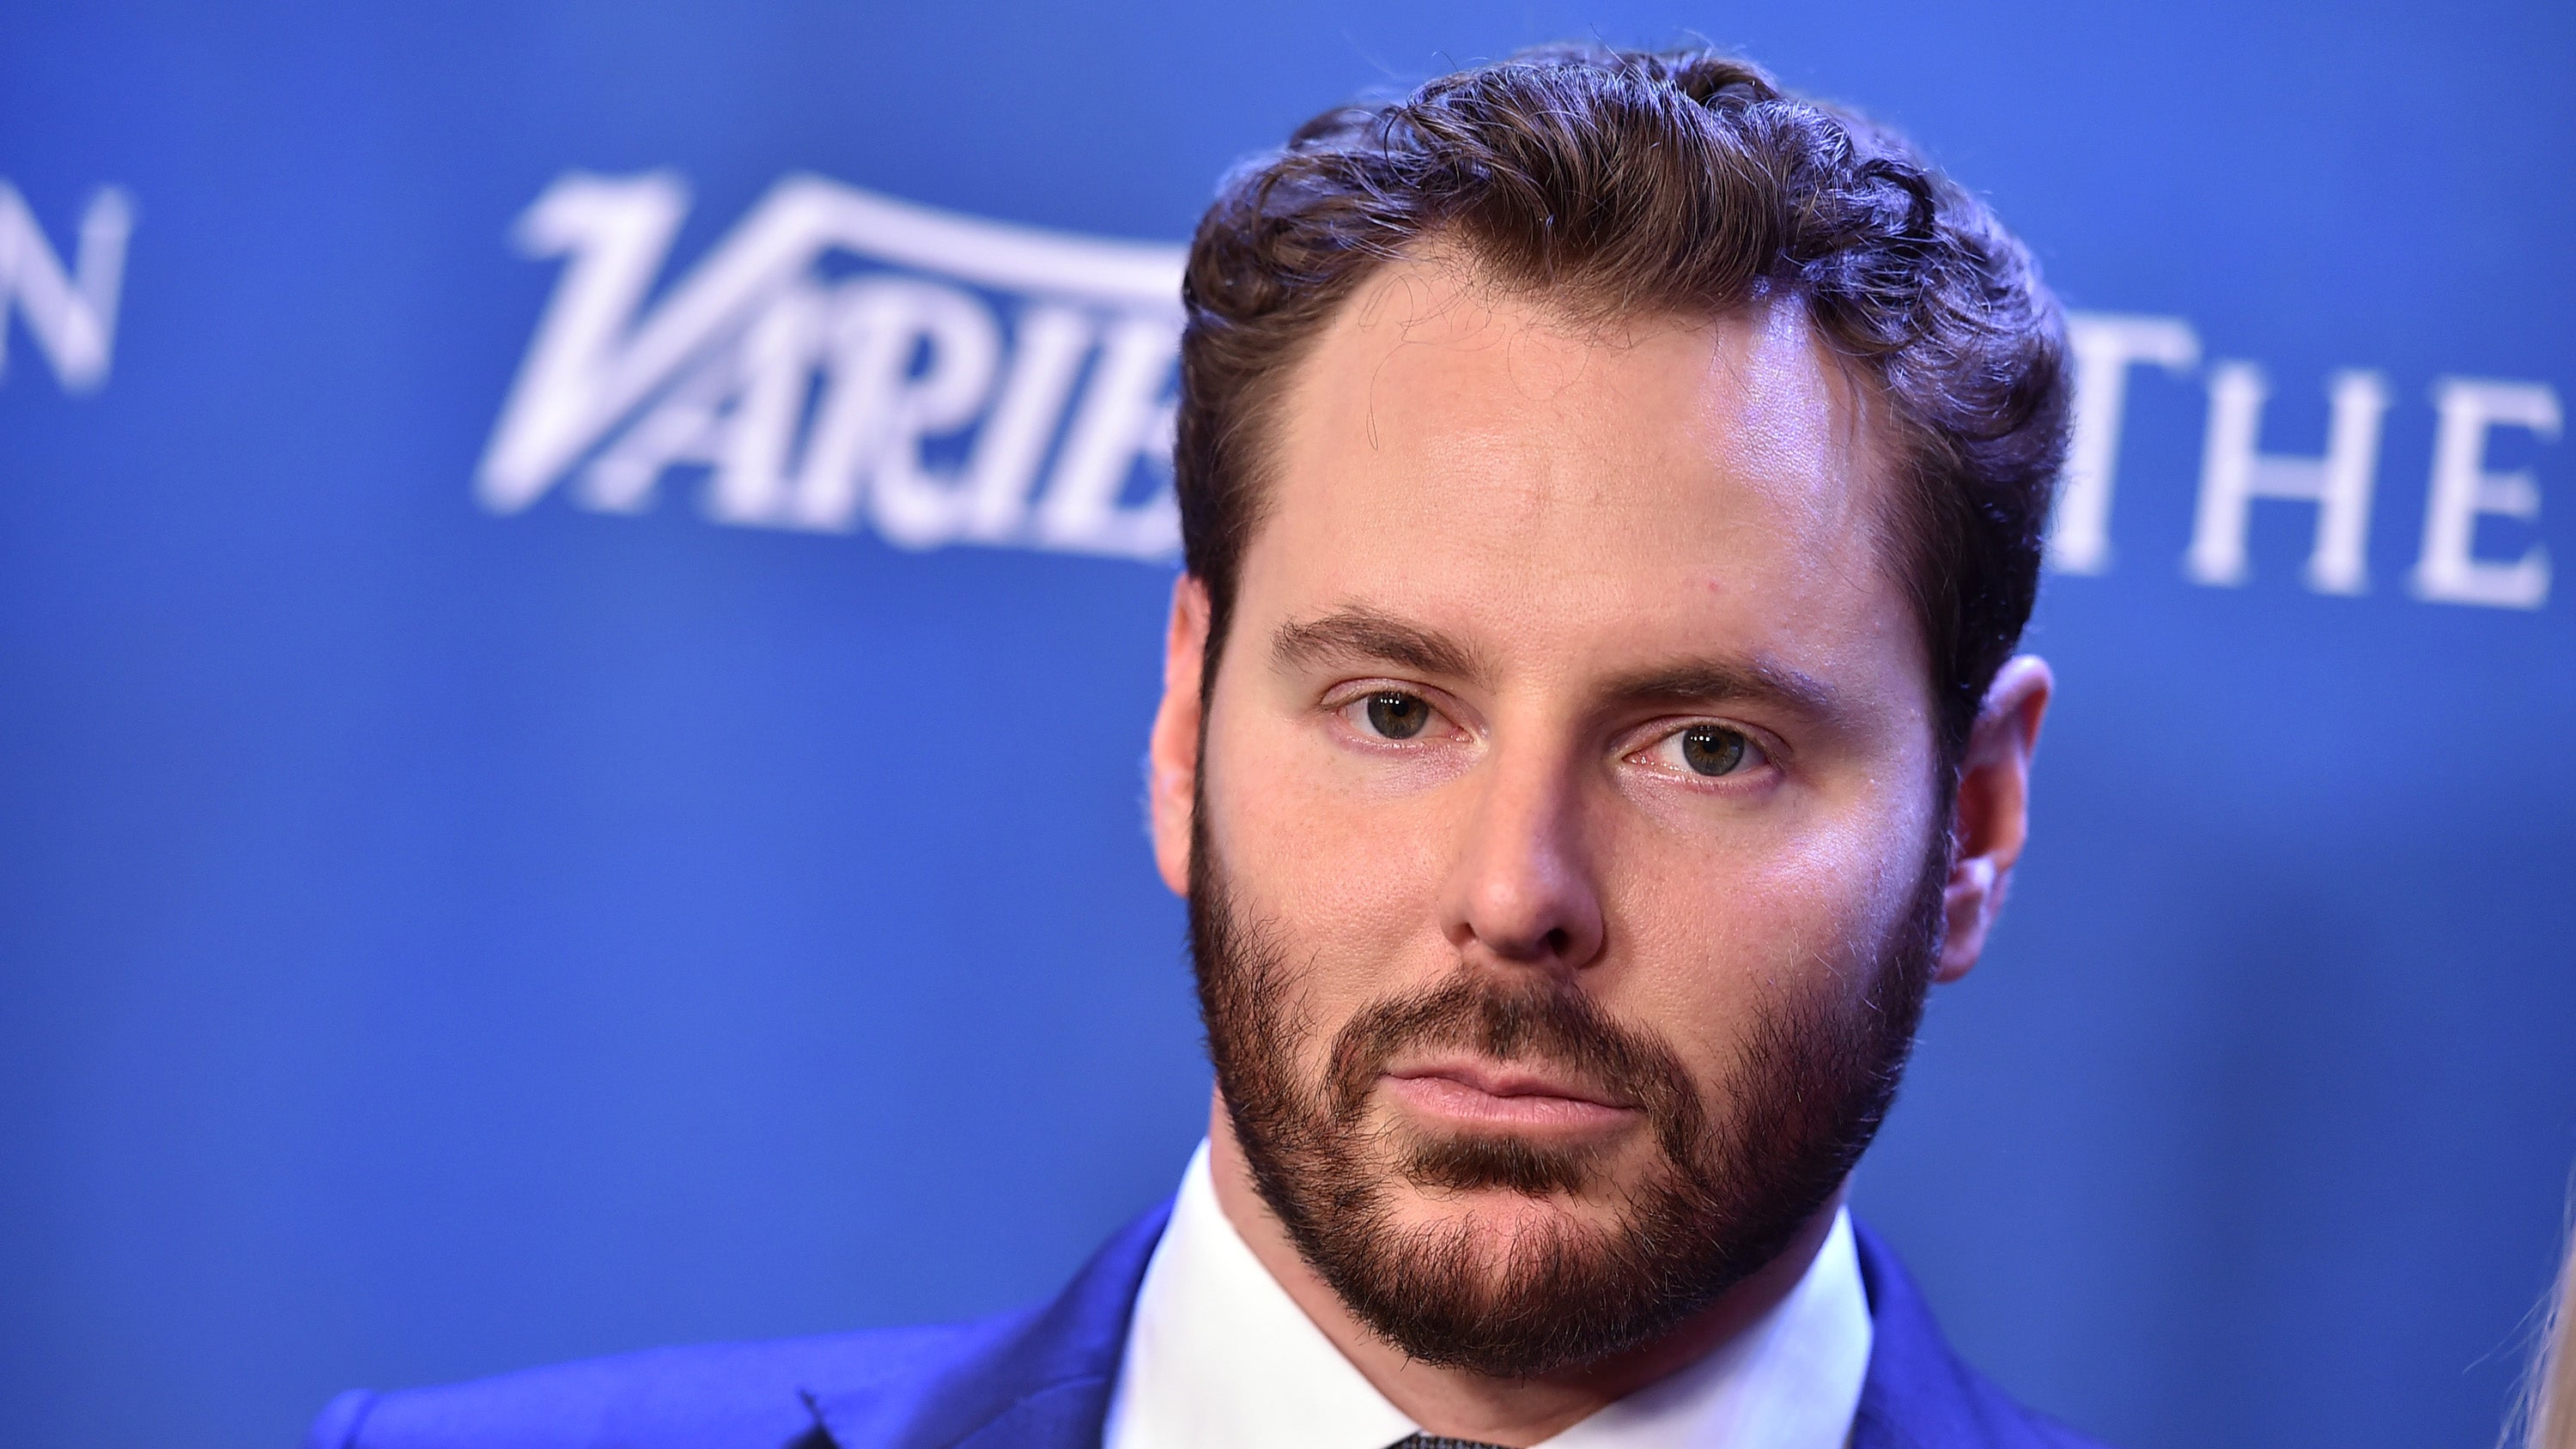 Napster Founder Thinks You Should Pay $US50 ($67) to Watch New Movies at Home